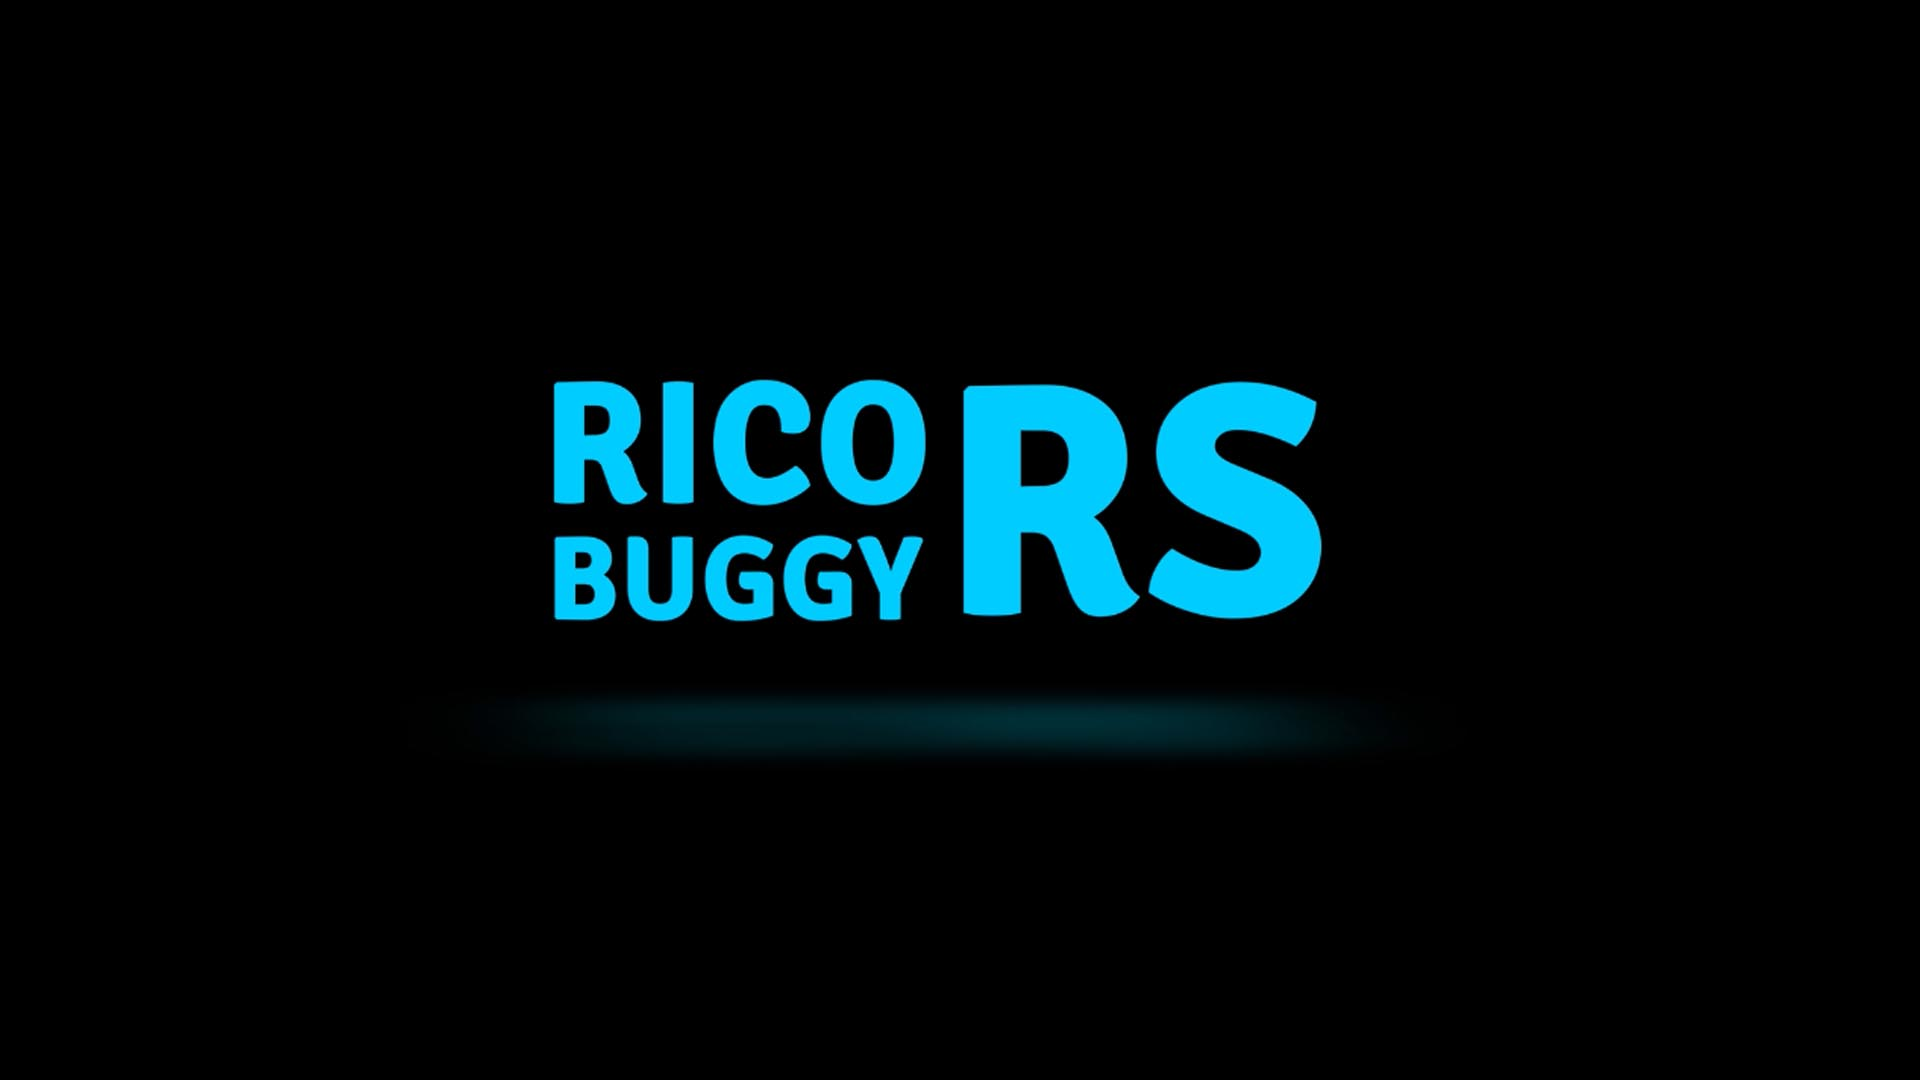 rico buggy rs